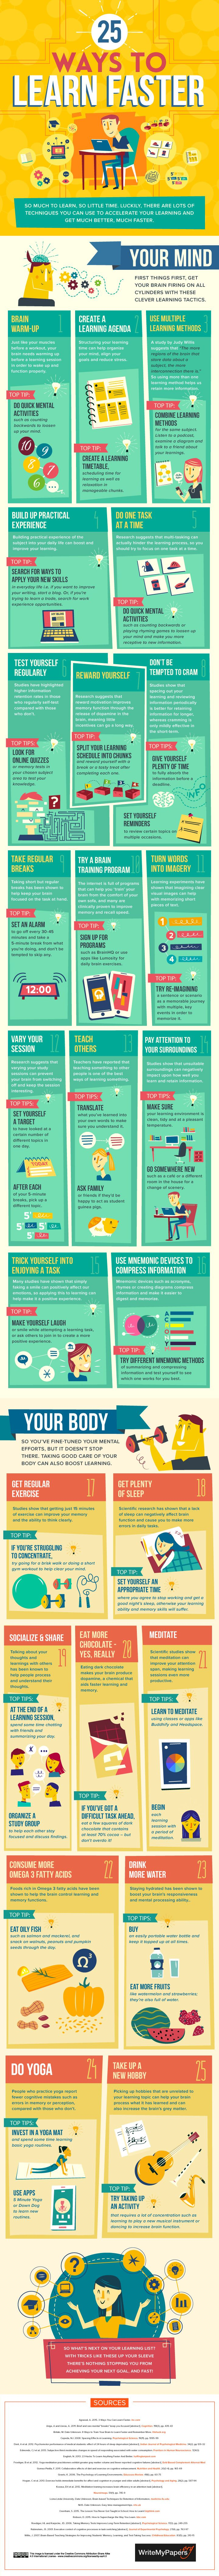 25 ways to learn faster #Infographic